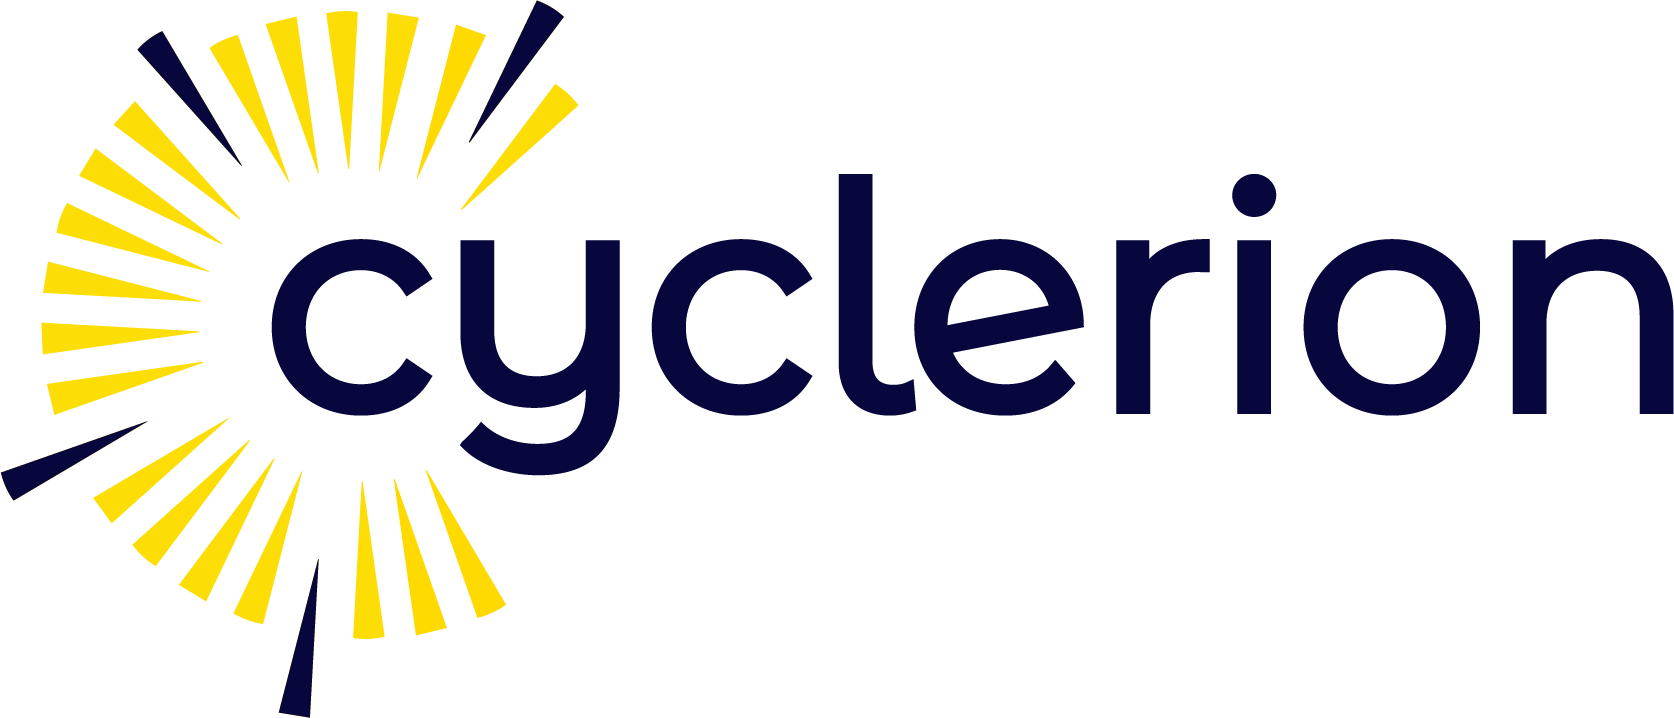 Cyclerion Therapeutics Reports Second Quarter 2021 Financial Results and Corporate Update